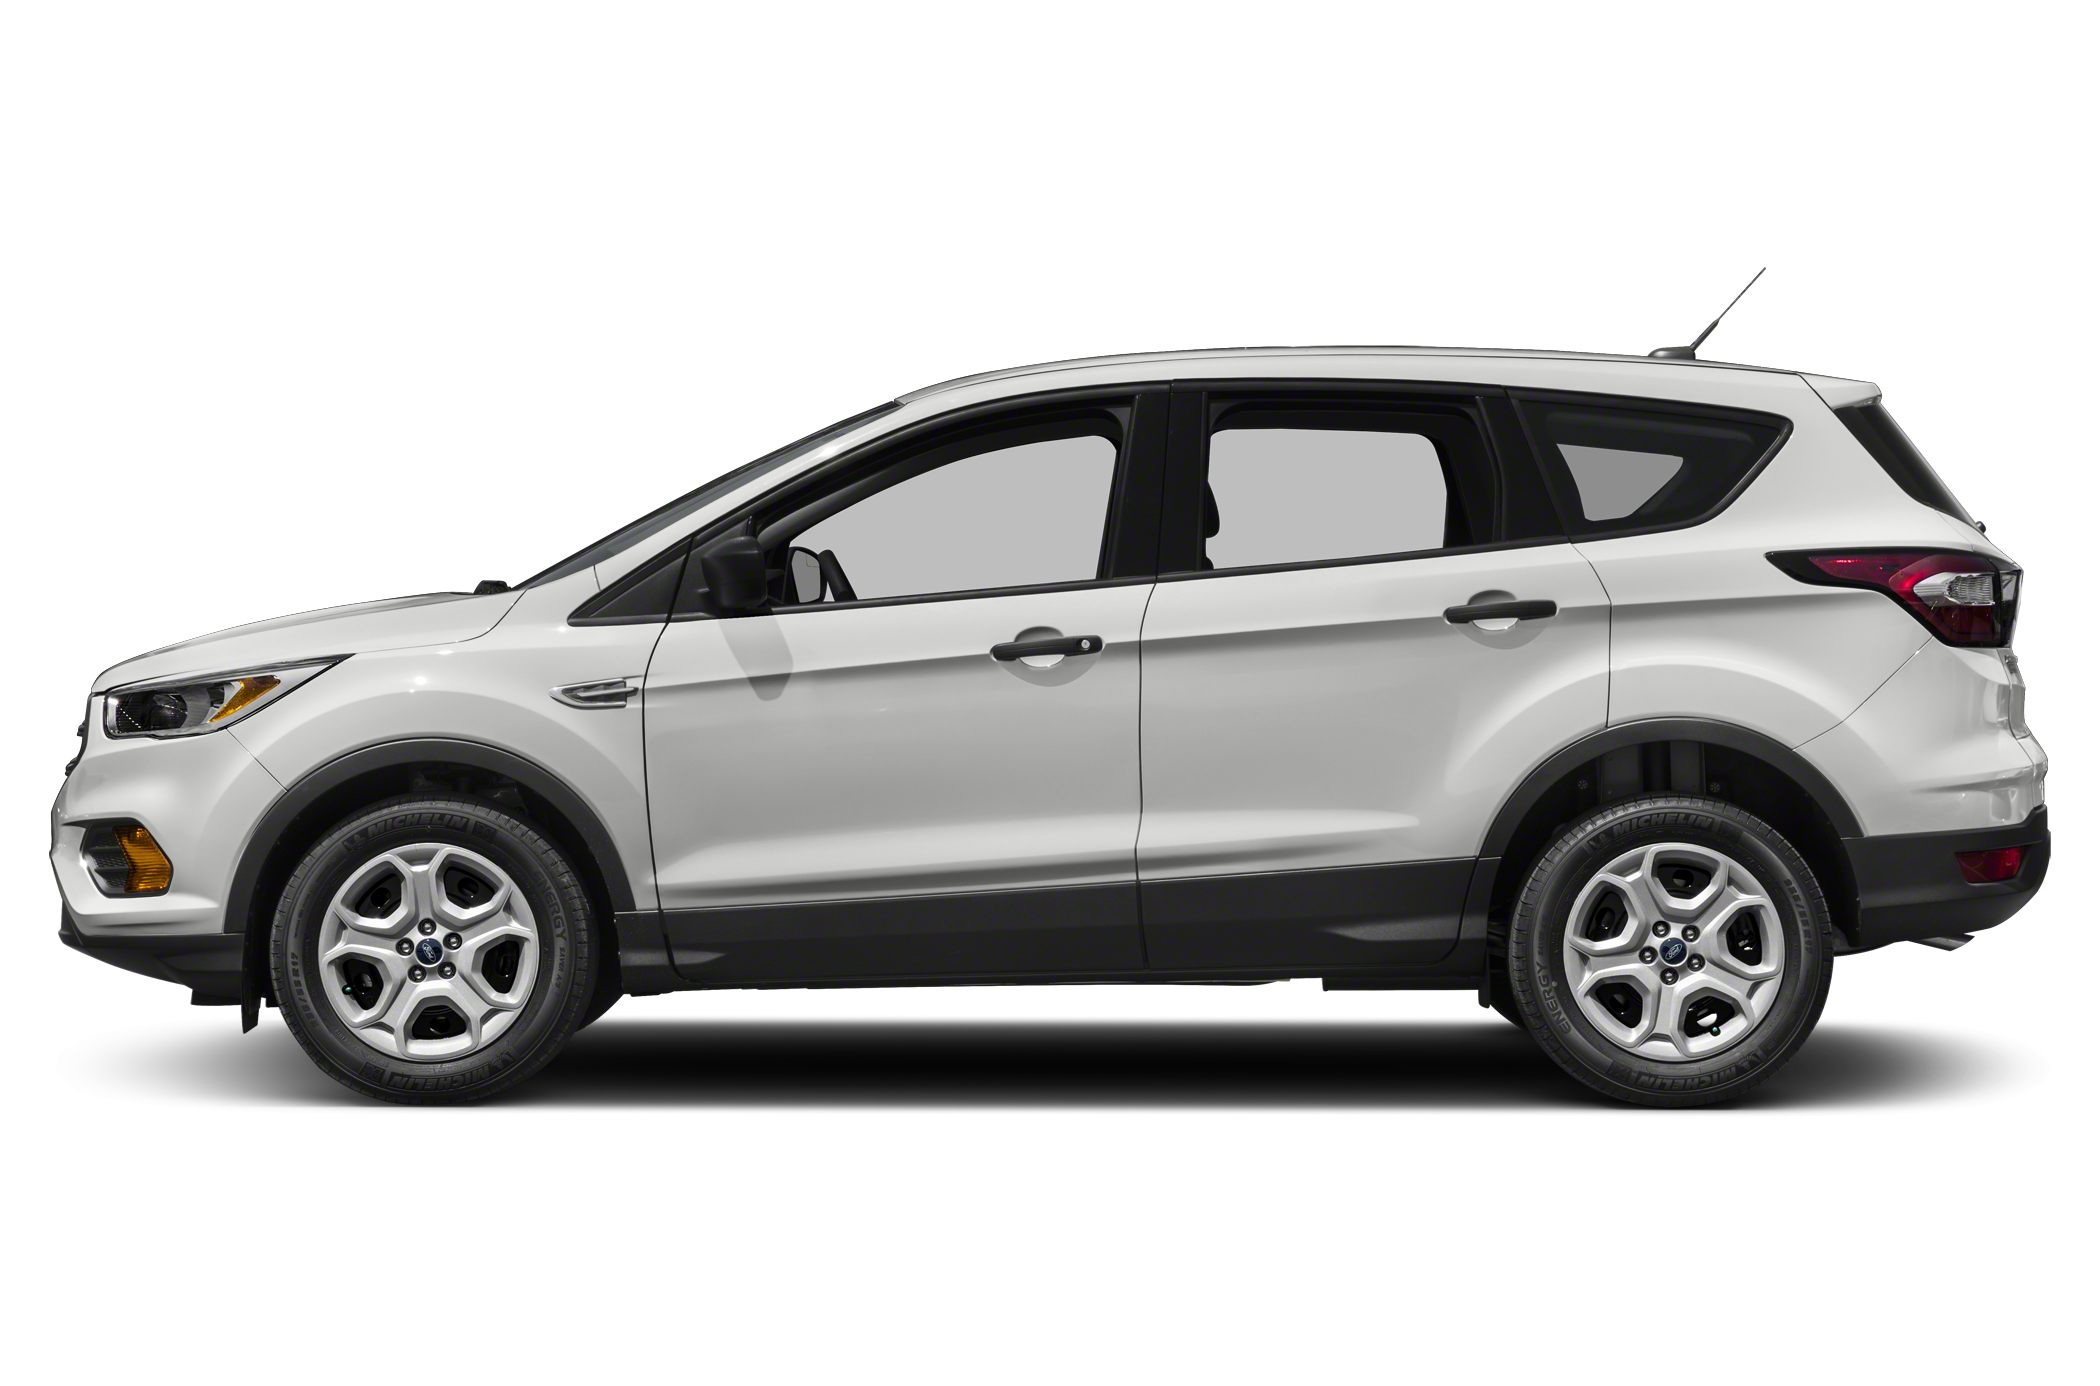 Ford Escape Lease >> New 2019 Ford Escape For Sale Lease Levittown Ny Vin 1fmcu9gd3kub86980